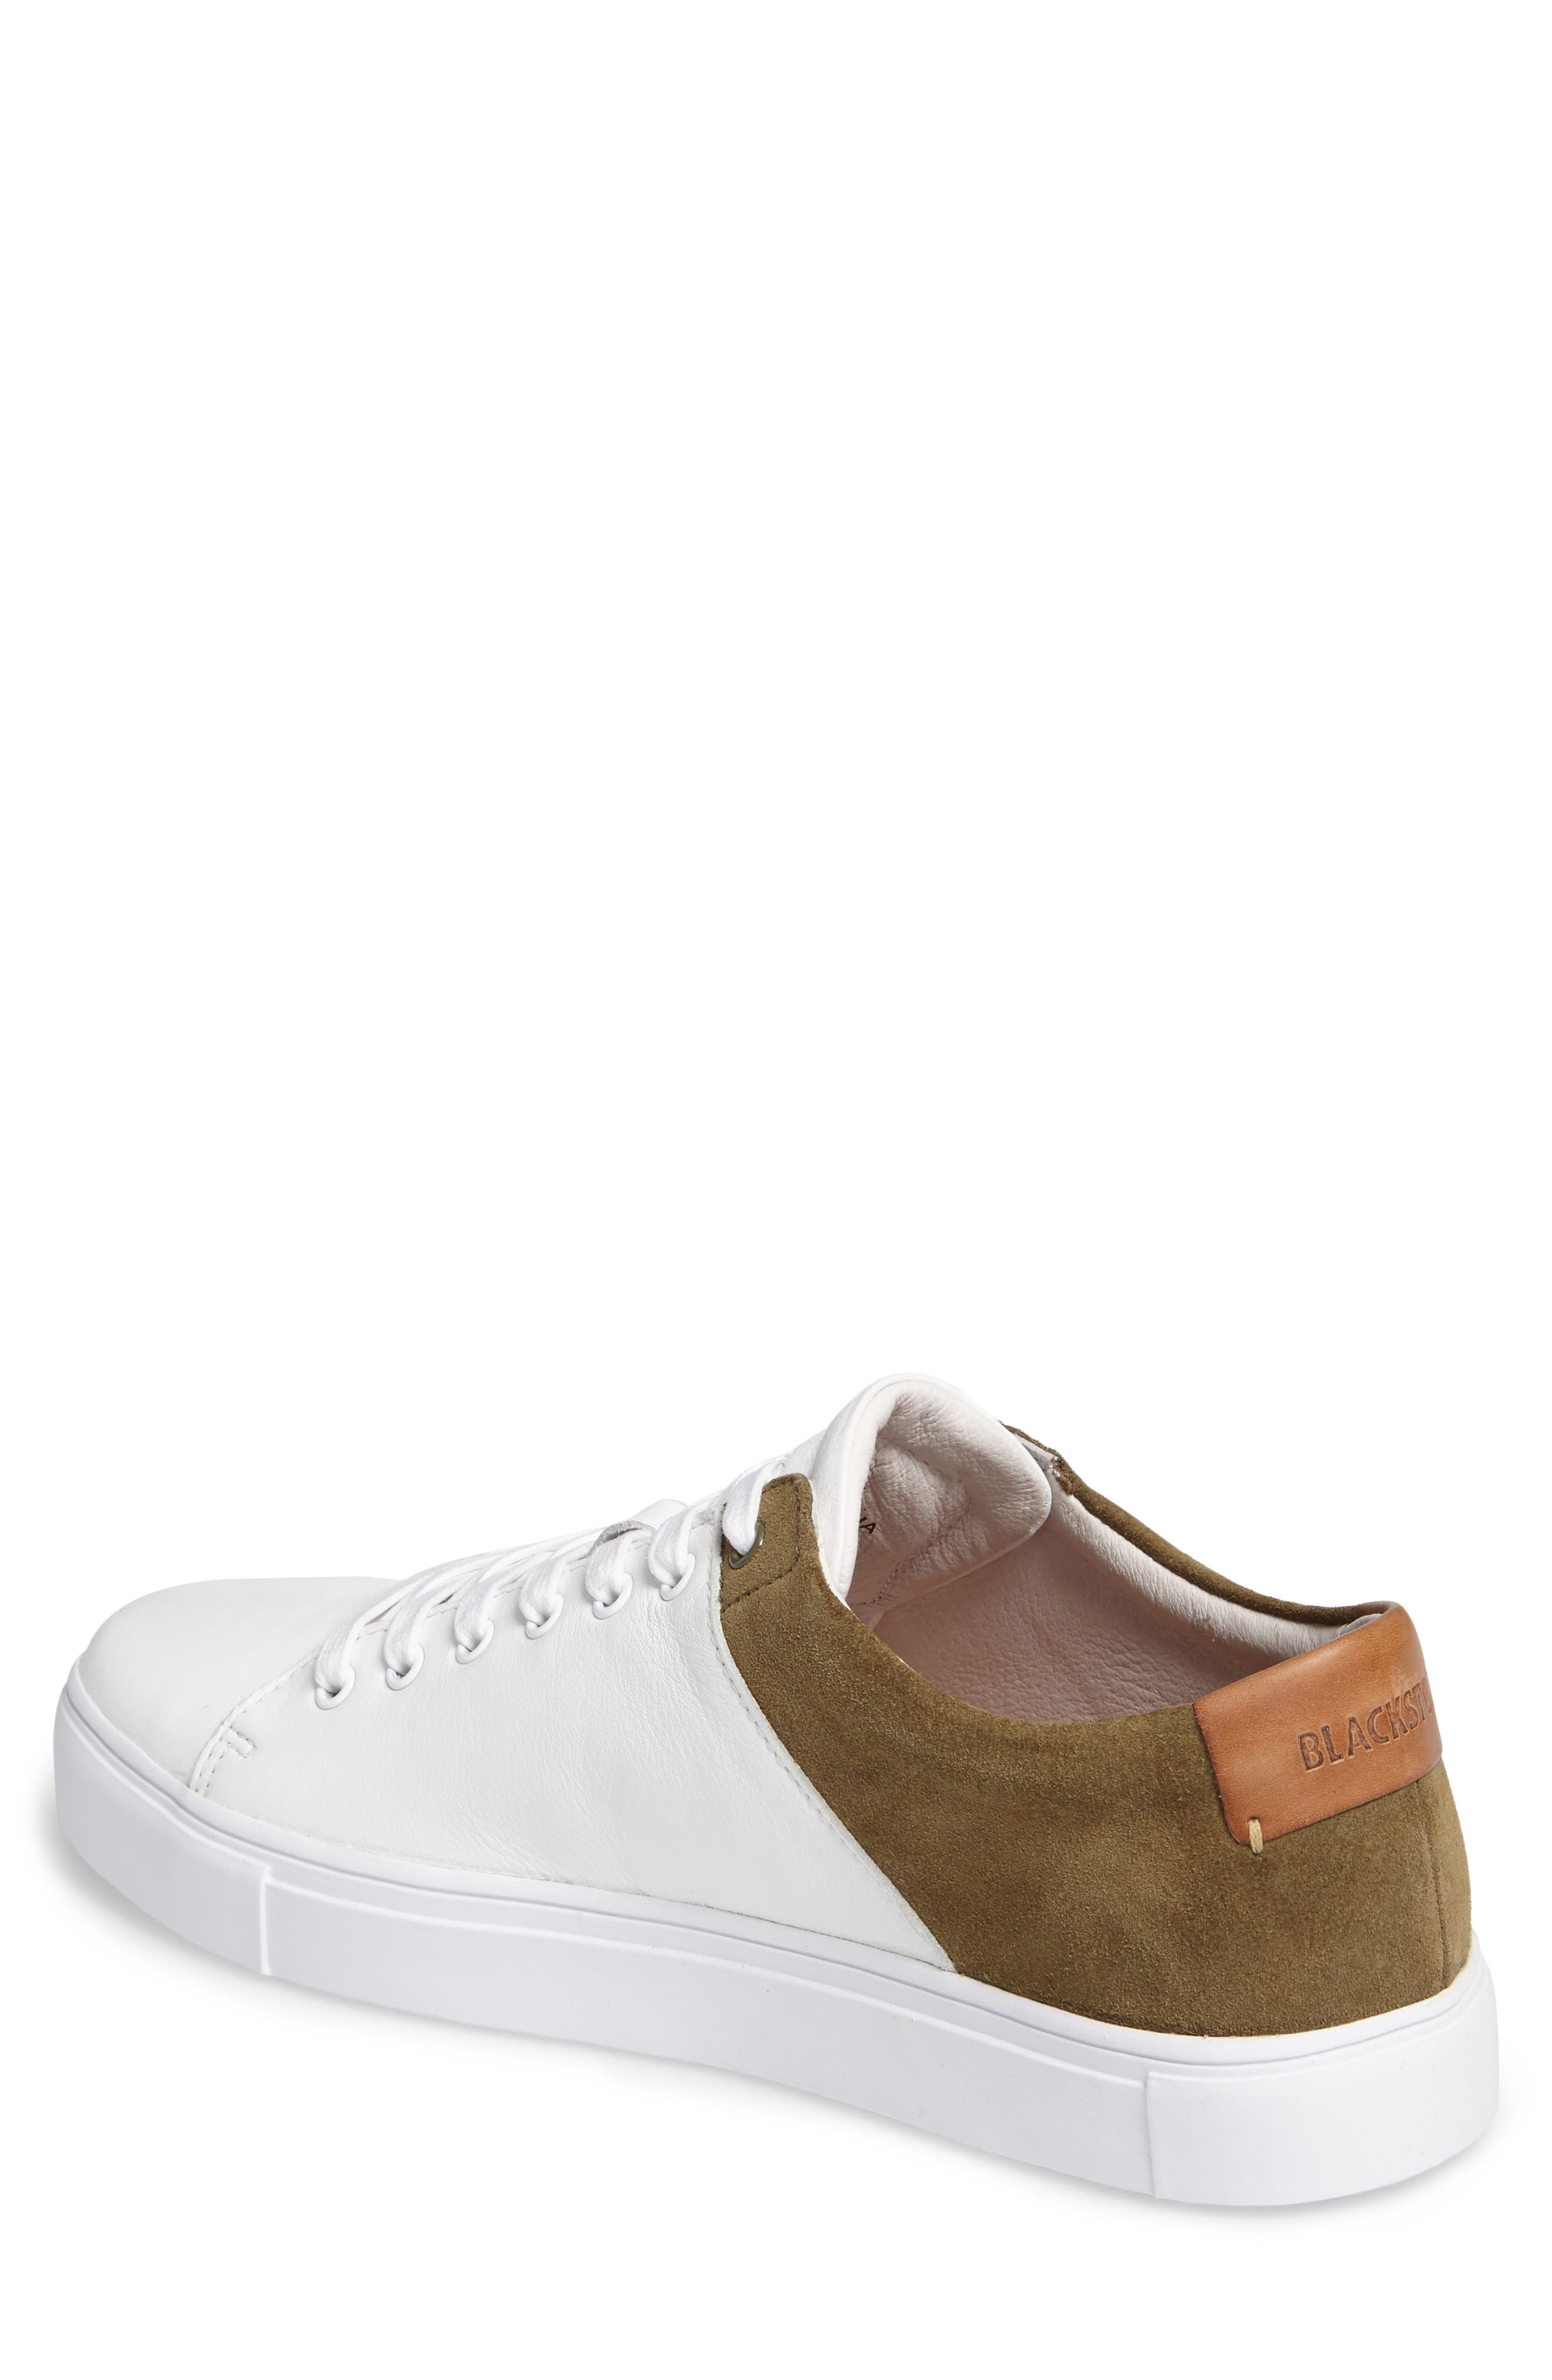 NM03 Two-Tone Sneaker,                             Alternate thumbnail 2, color,                             195